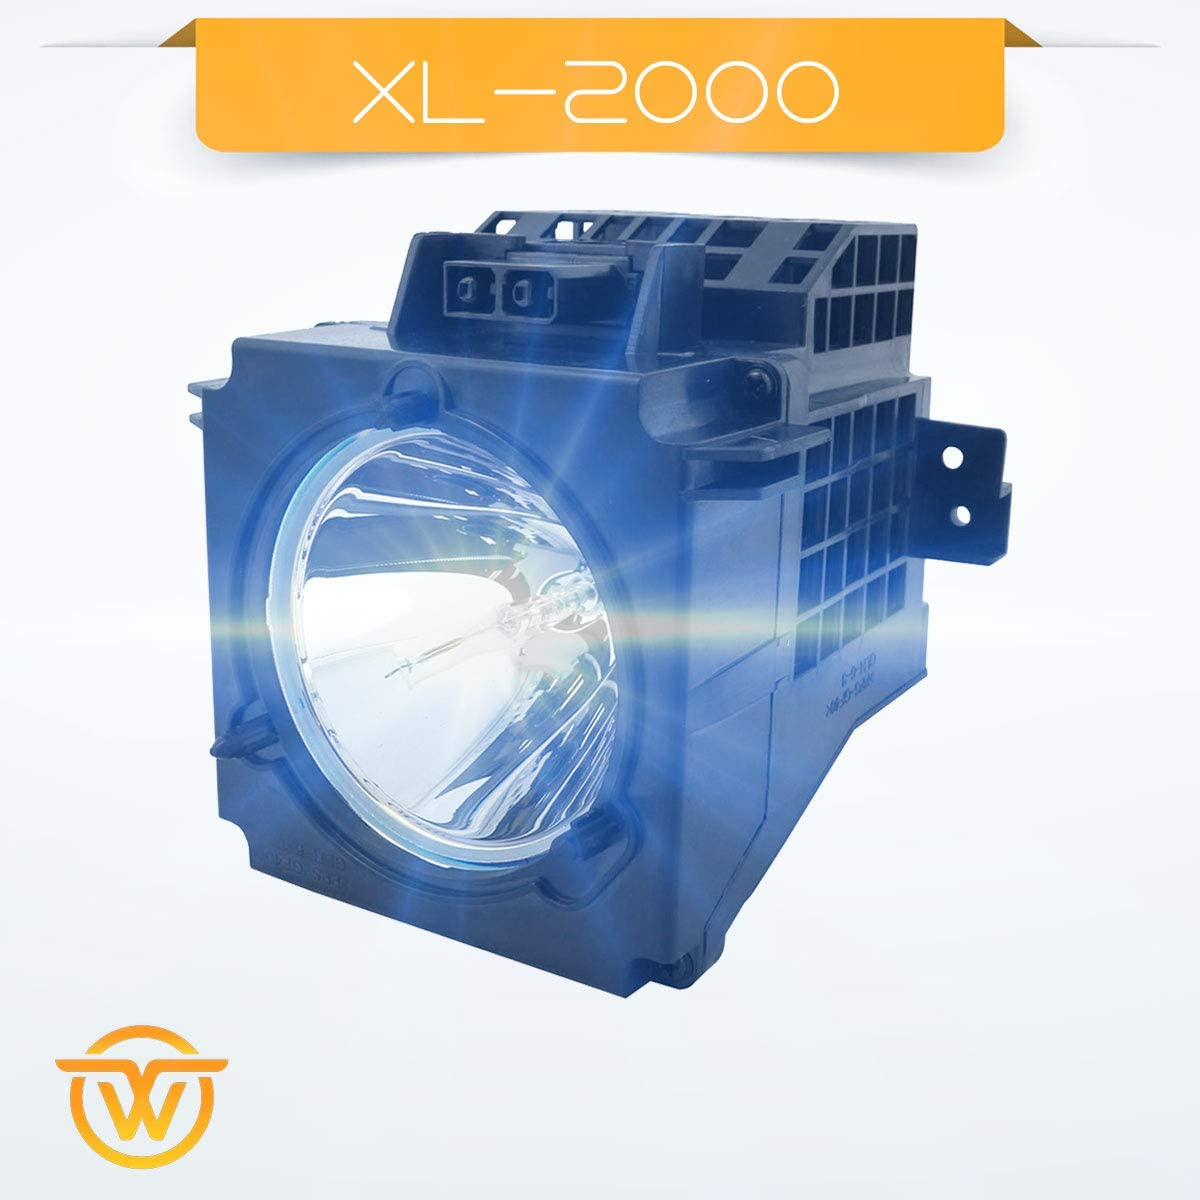 A-1601-753-A fits KF-60XBR800 KF-60DX100 KF-50XBR800 YWO Replacement Bulb with Enclosure for Sony TV XL-2000